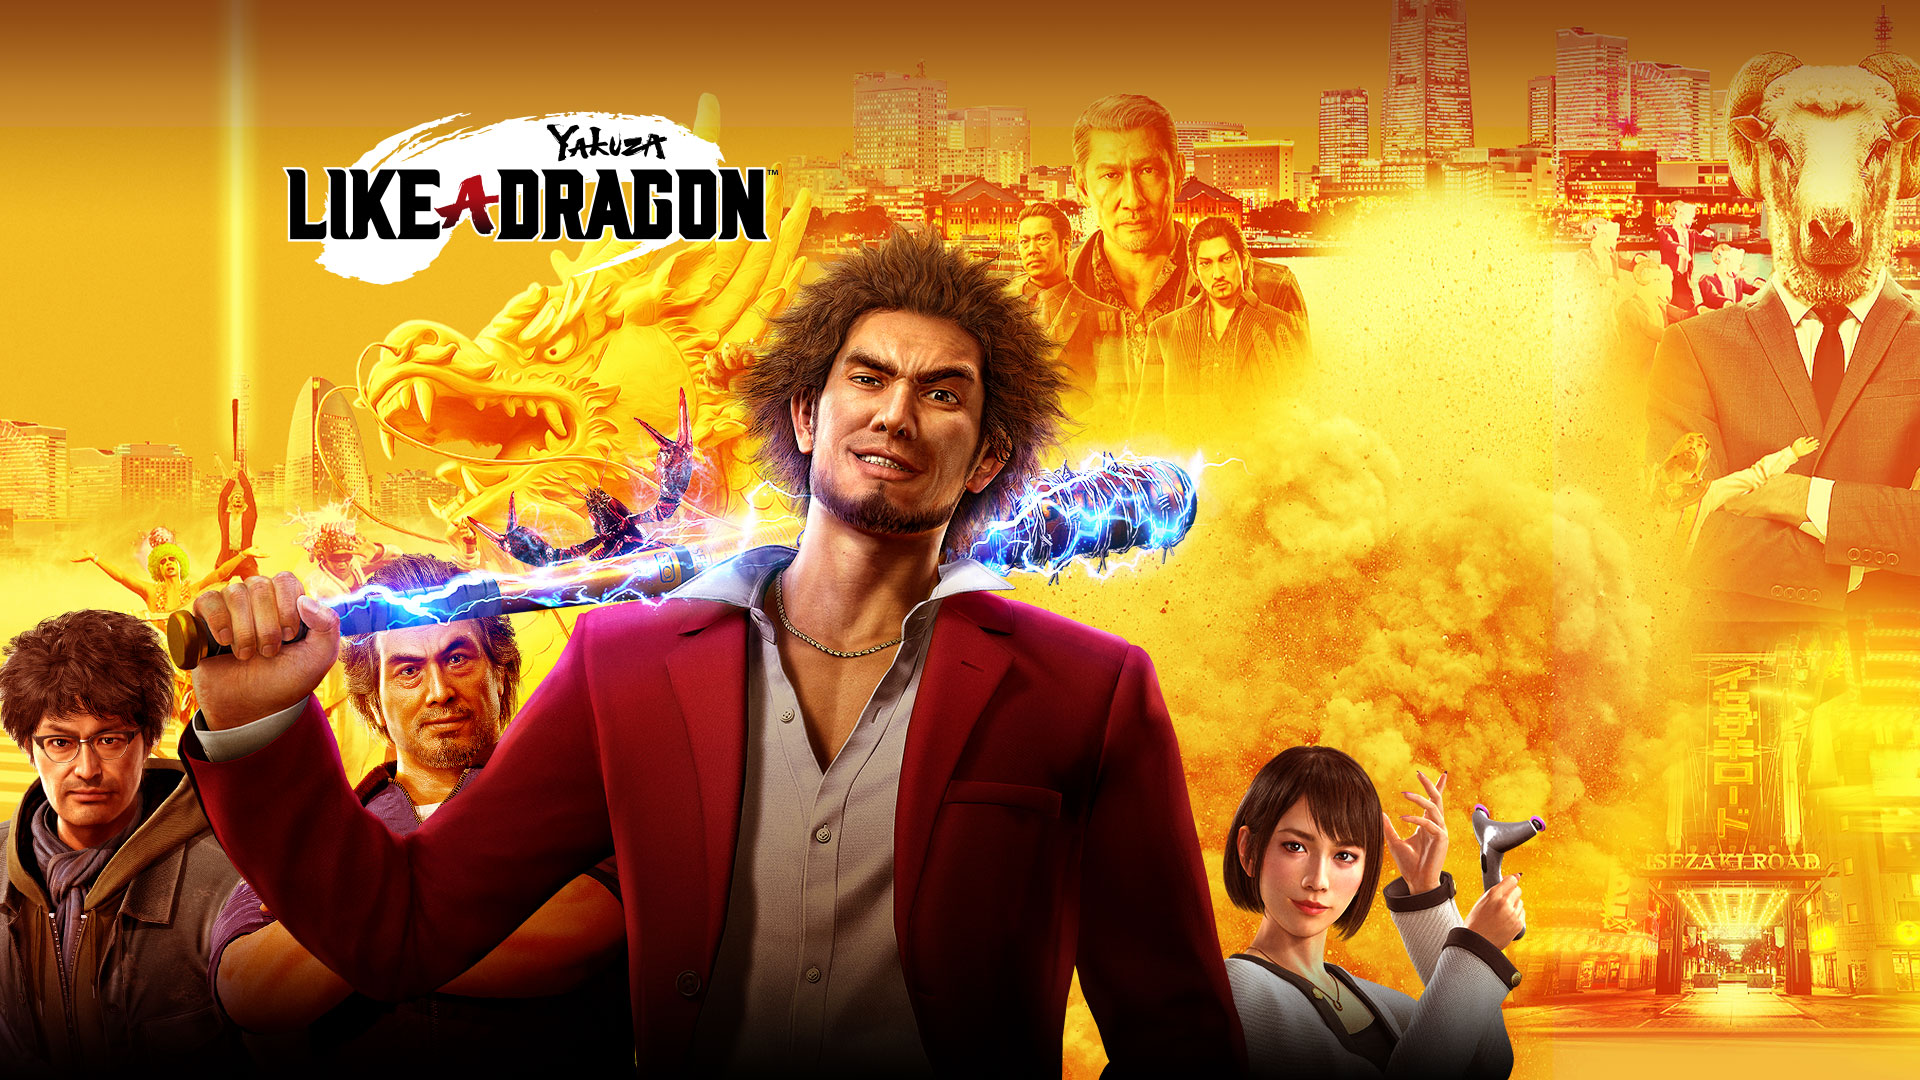 yakuza: like a dragon xbox series x resolution